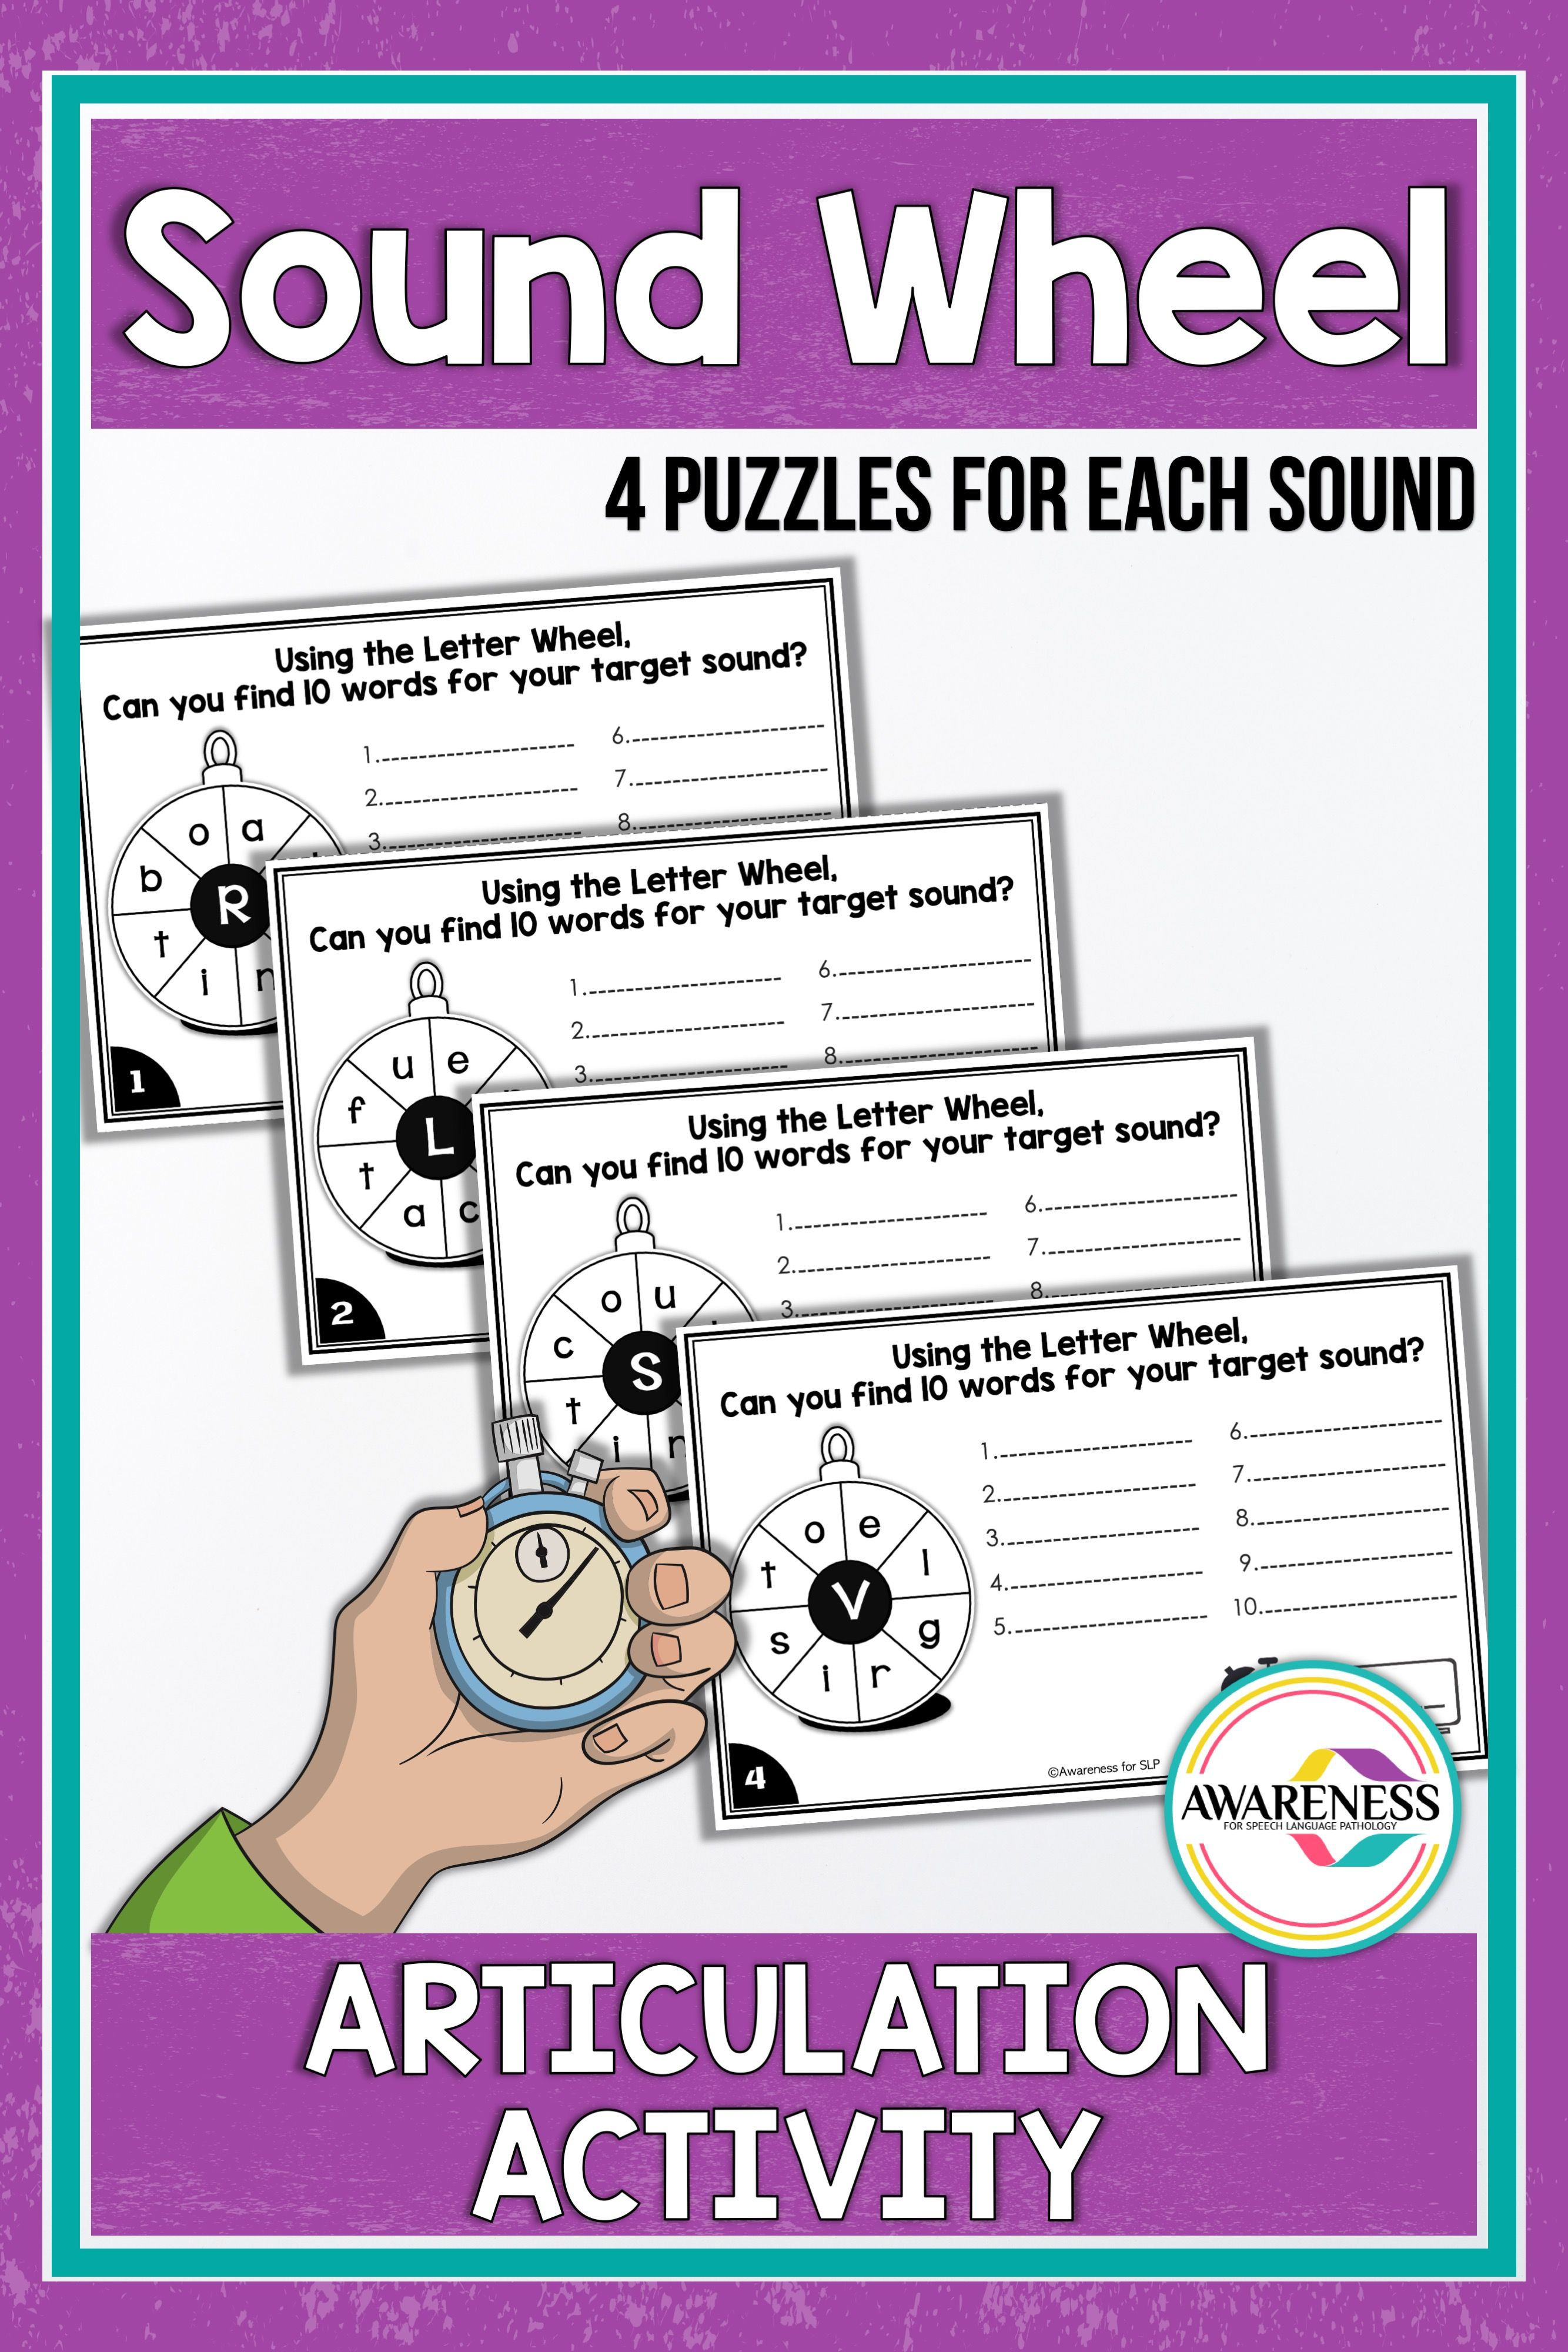 Articulation Activity Sound Wheel